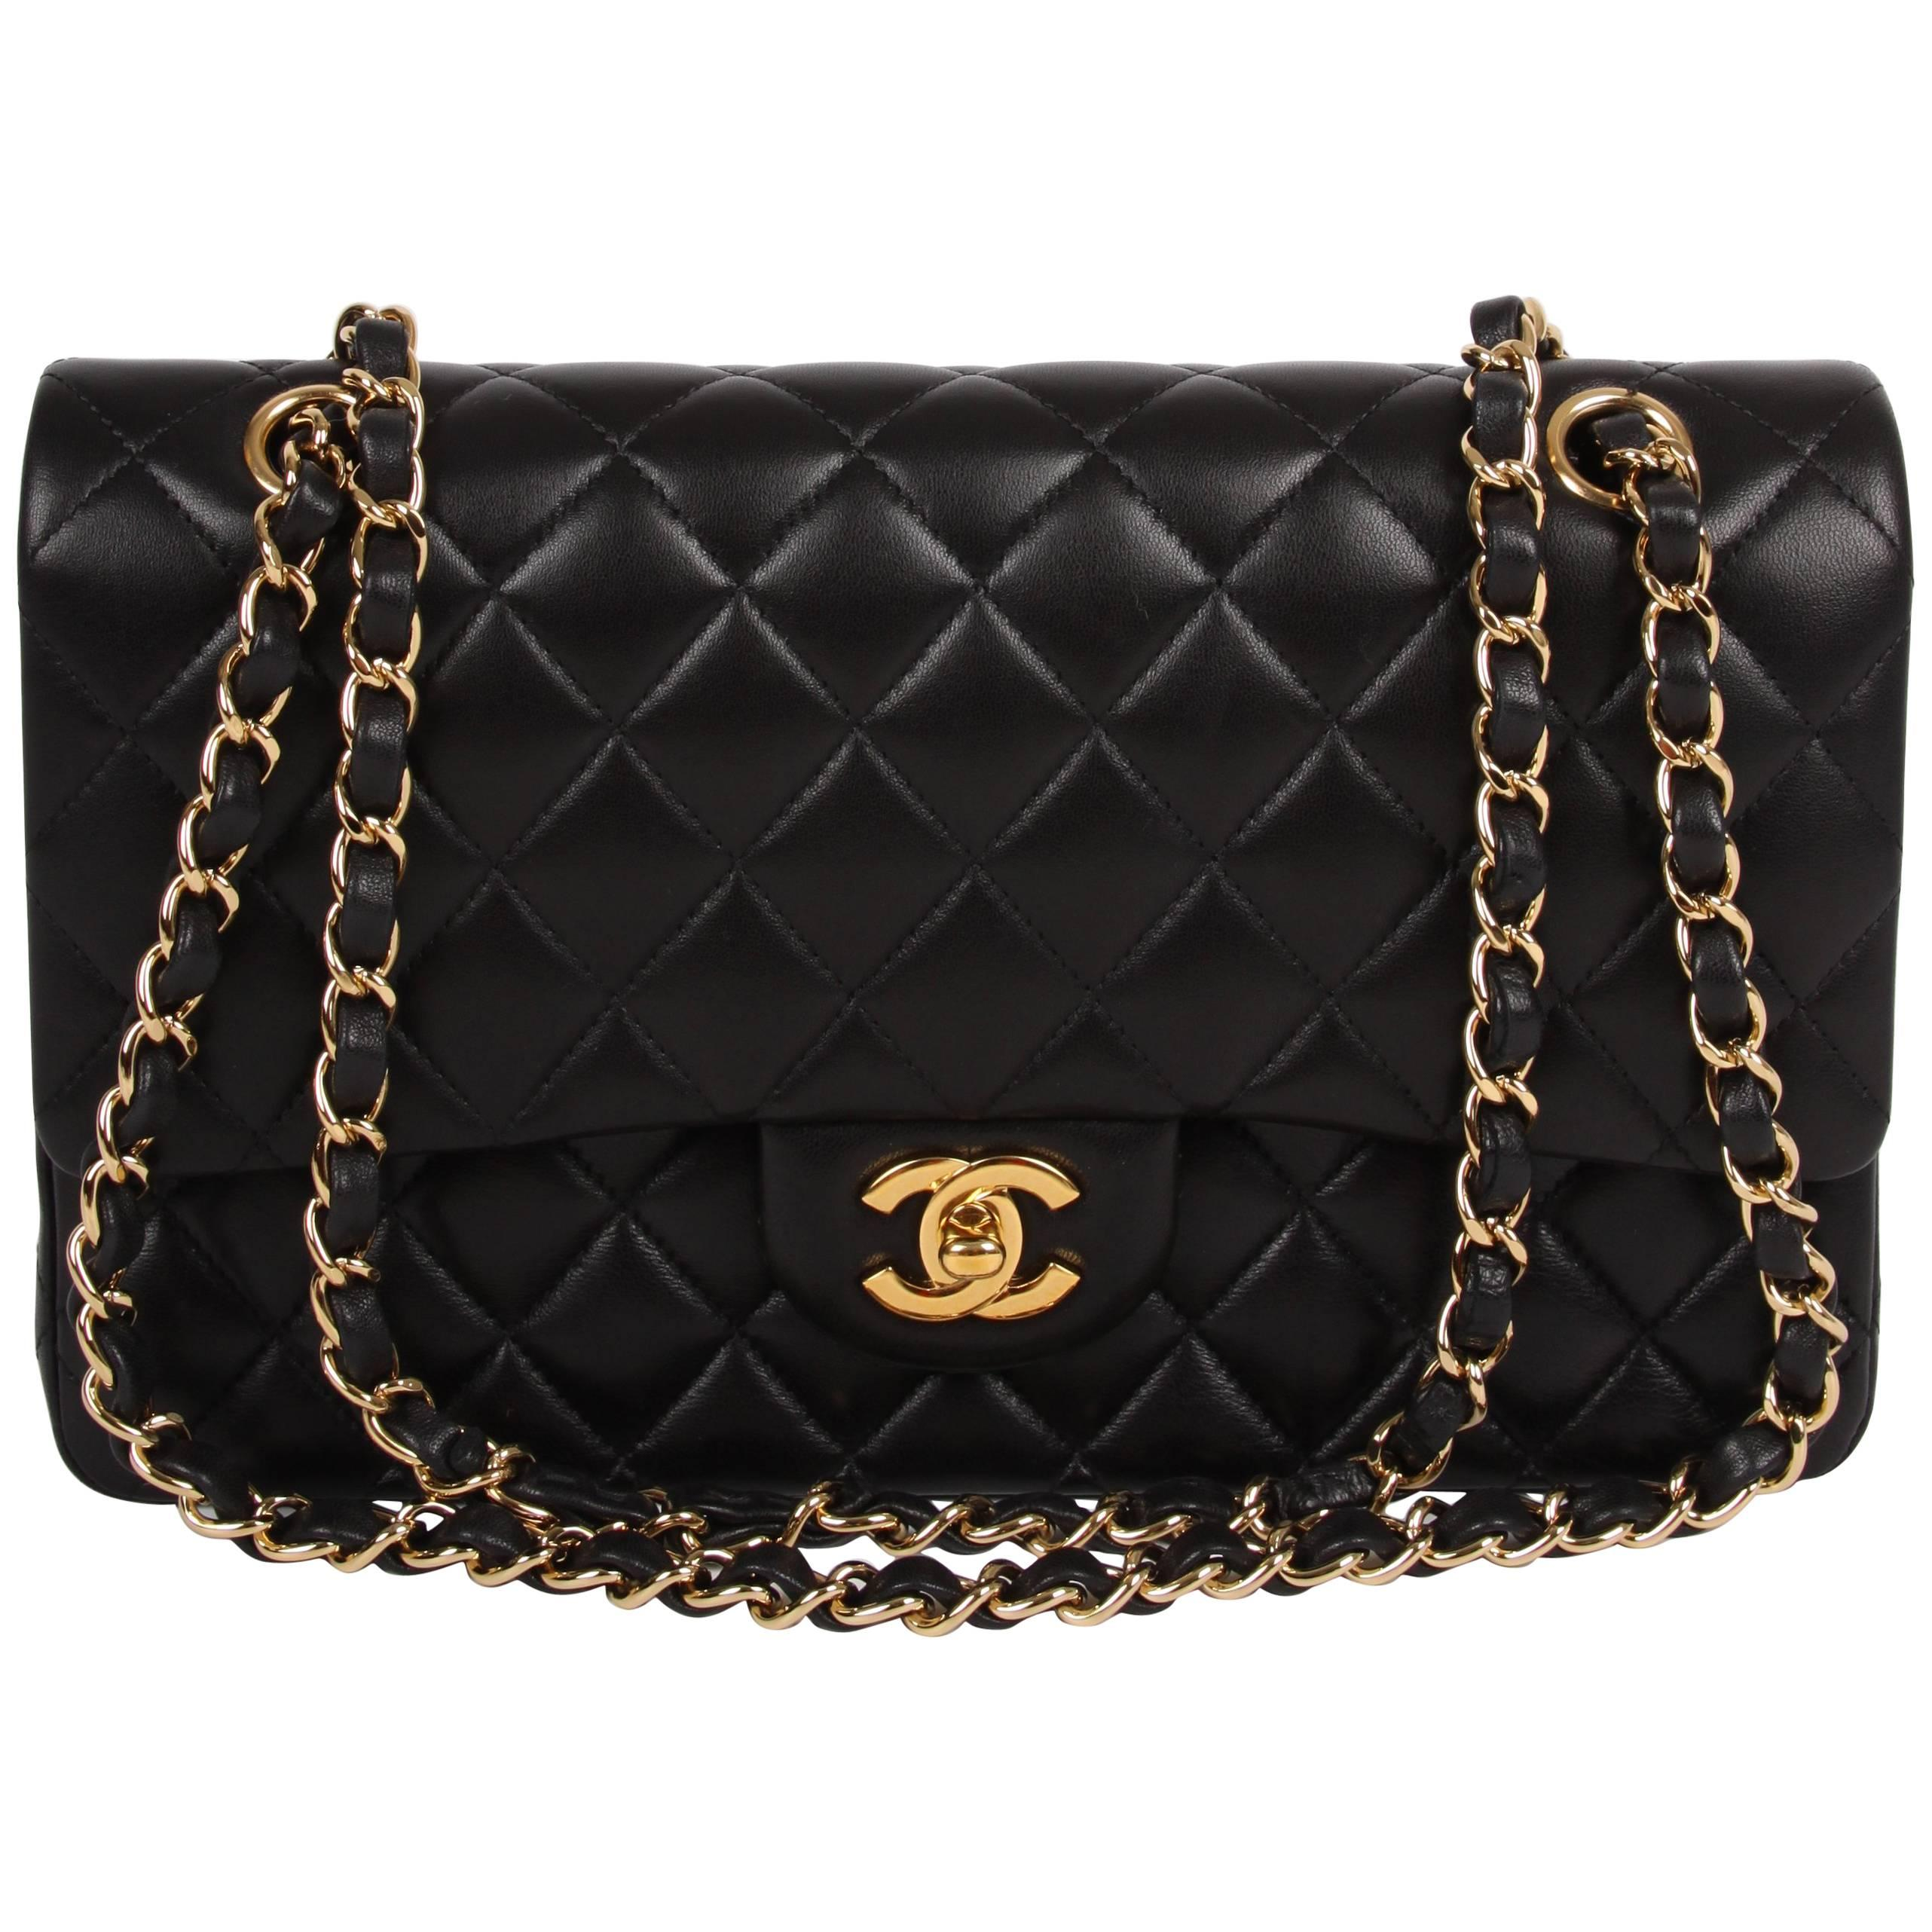 662ed20670a5e Chanel 2.55 Medium Classic Double Flap Bag - black gold at 1stdibs